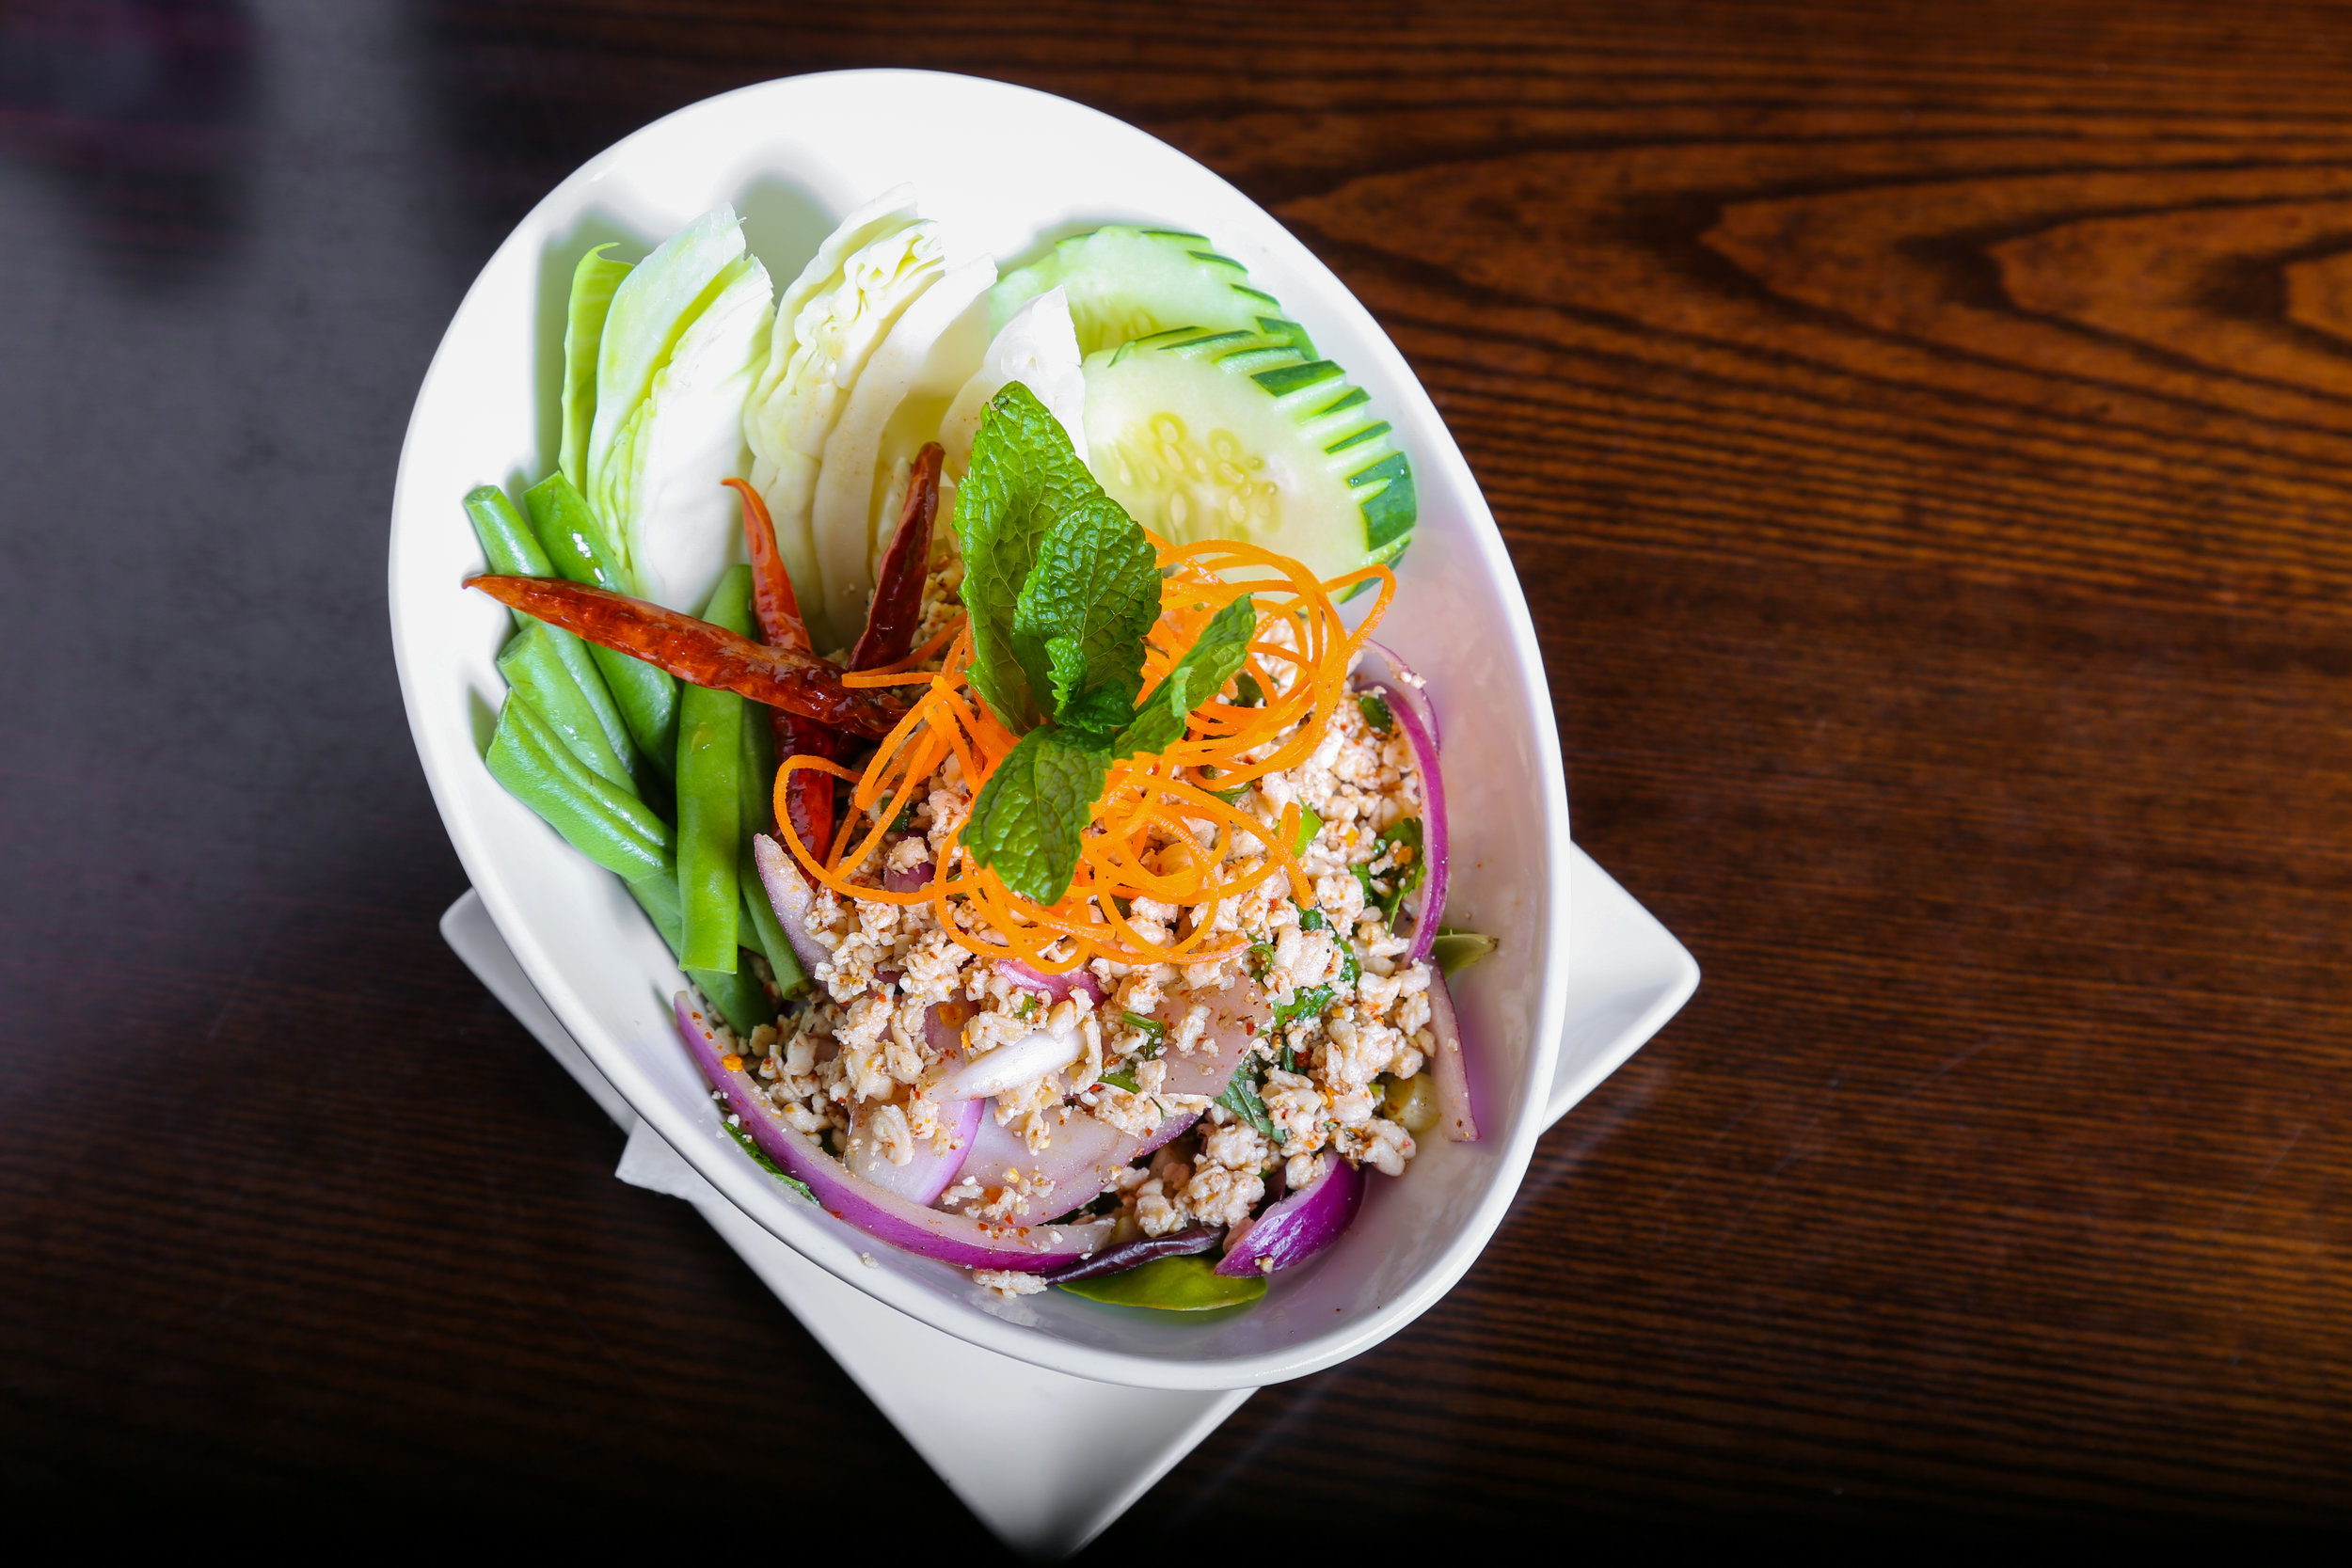 Larb(Chicken or Pork )    - Minced chicken or Pork, shallot, scallion, cilantro, mint and roasted rice with spicy lime dressing.